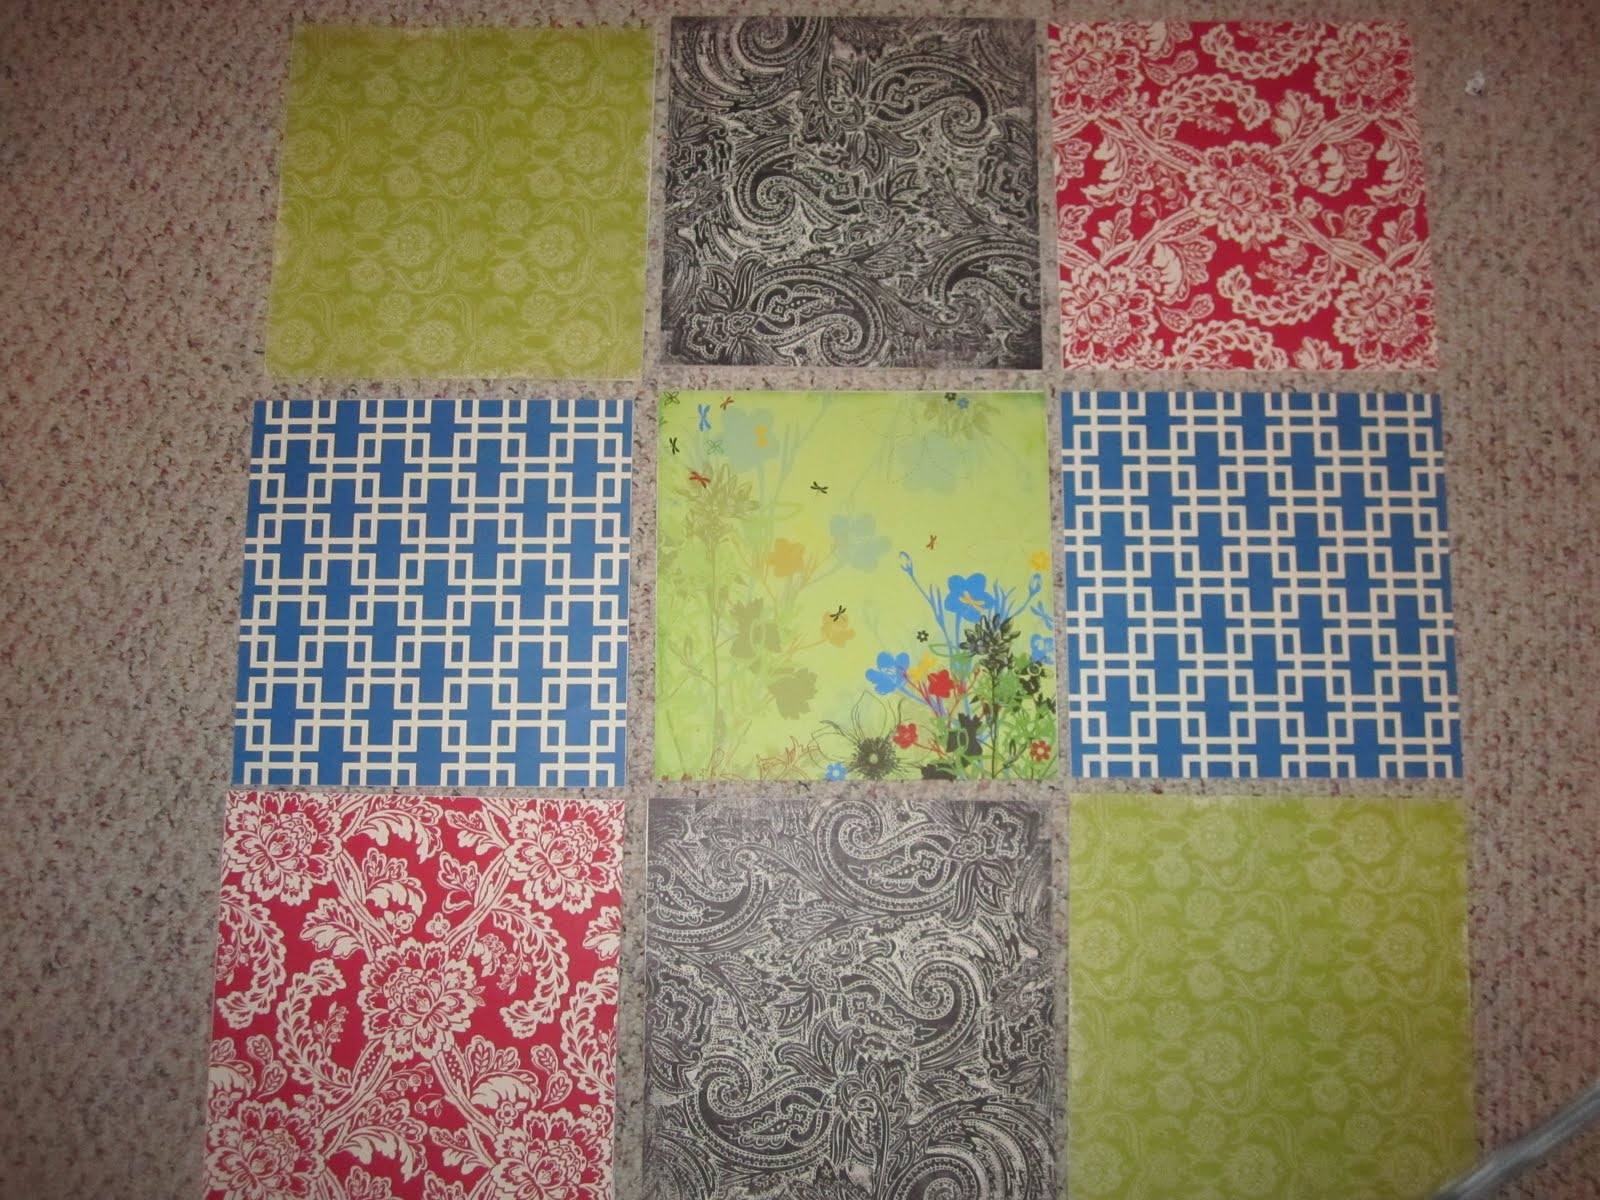 Wall Decor With Scrapbook Paper : Cheap college art projects scrapbook paper wall decor